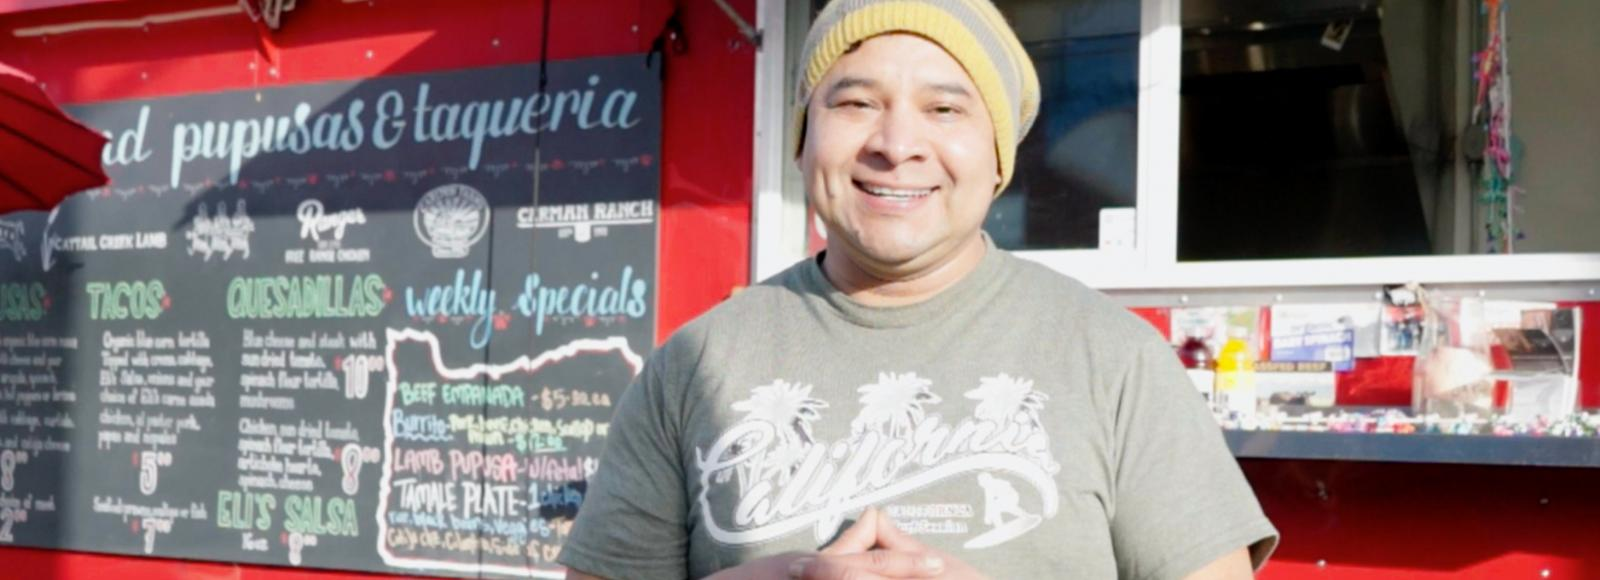 A smiling man stands in front of a red food truck,